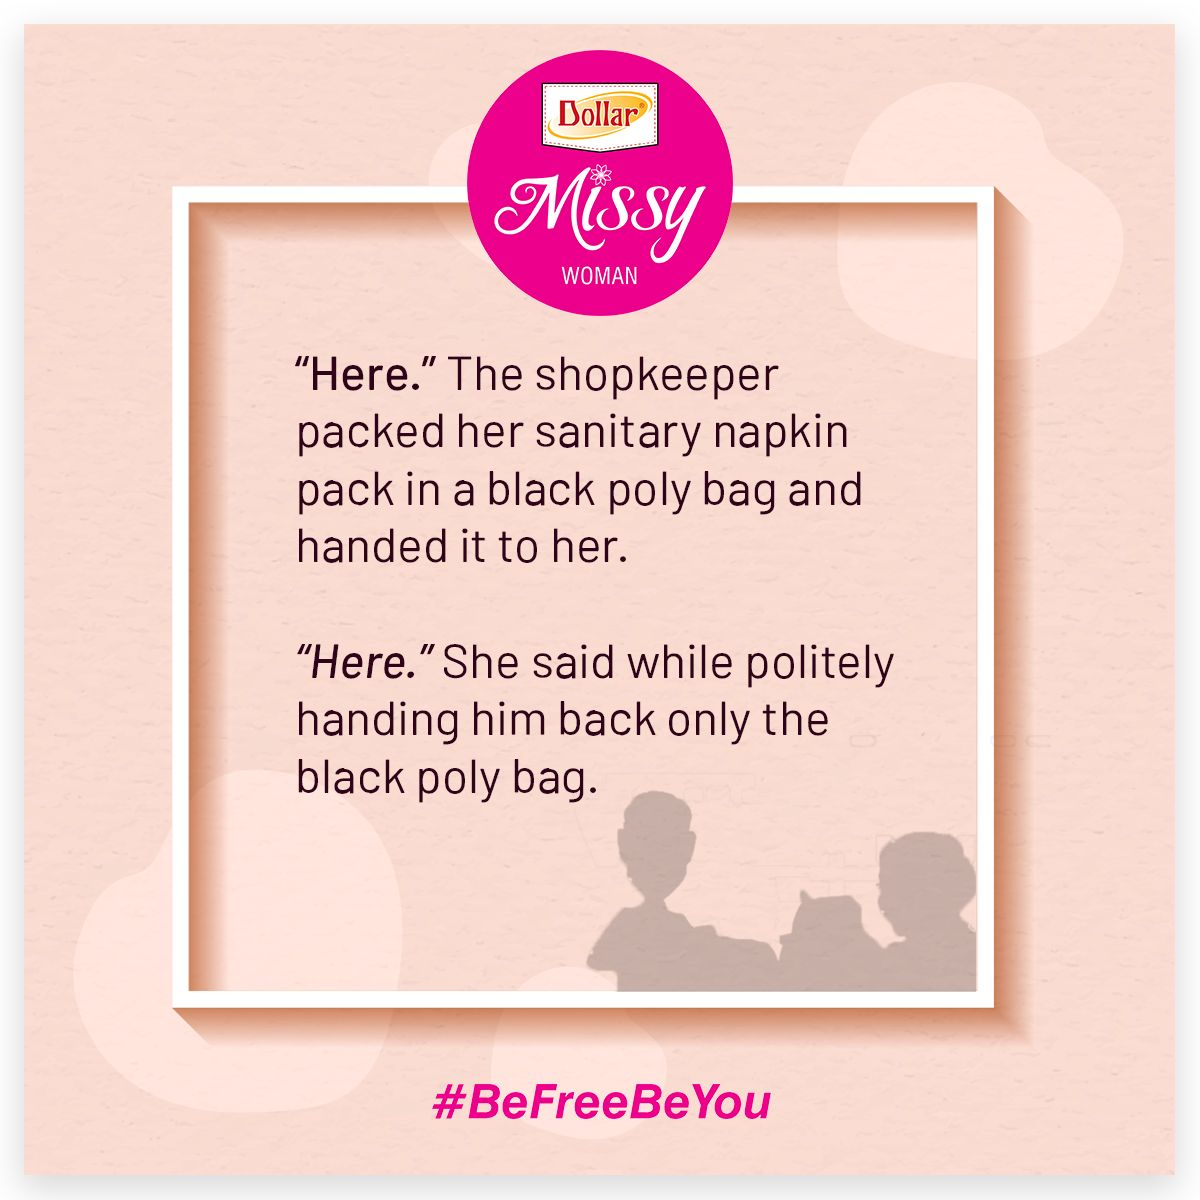 Pin on befreebeyou an initiative by dollar missy